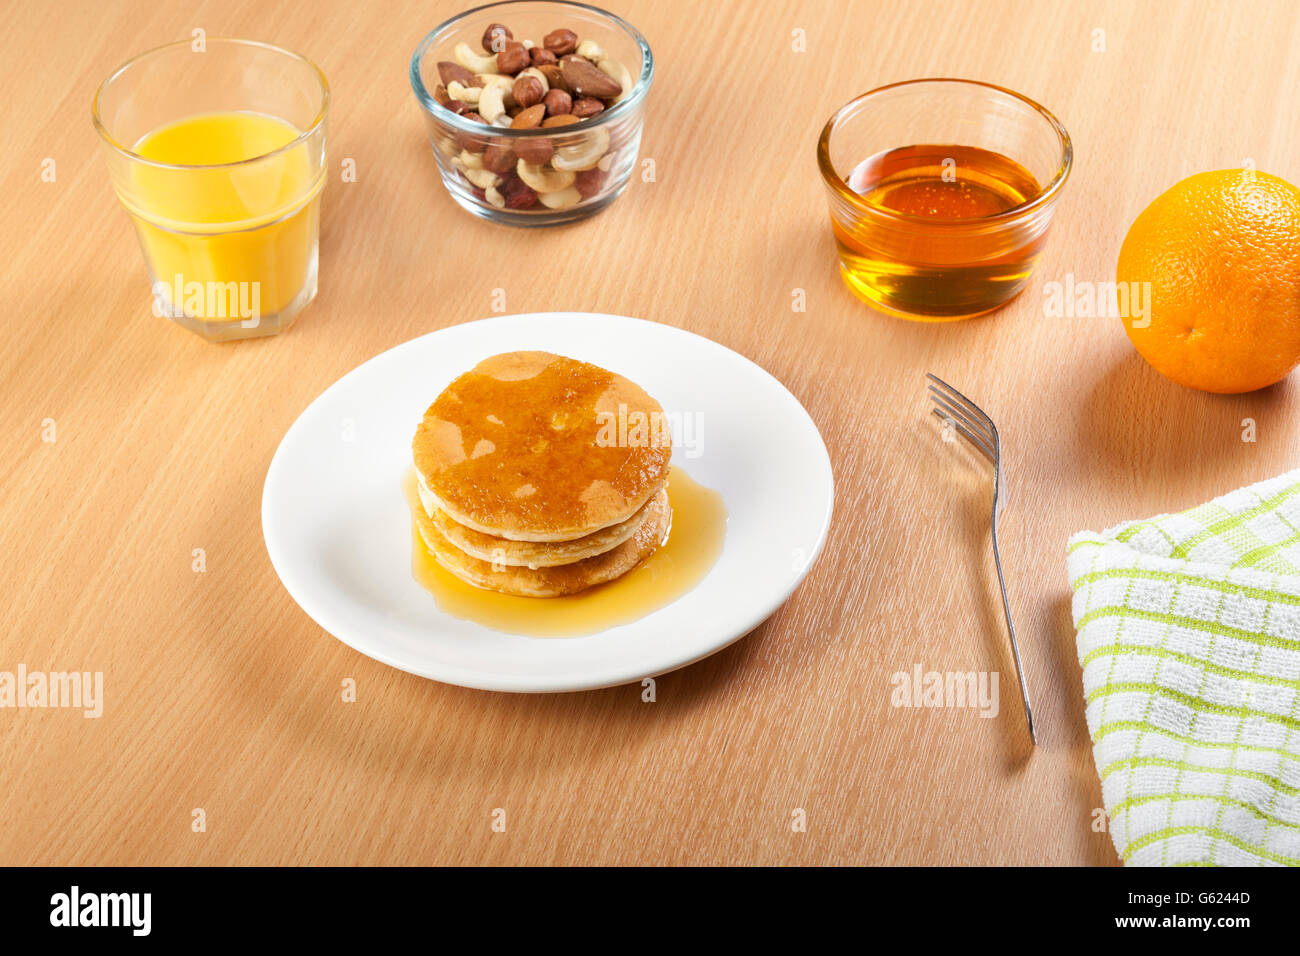 Plate of syrup covered pancakes with a bowl of mixed nuts and dried fruit on a breakfast table with a glass of fresh - Stock Image